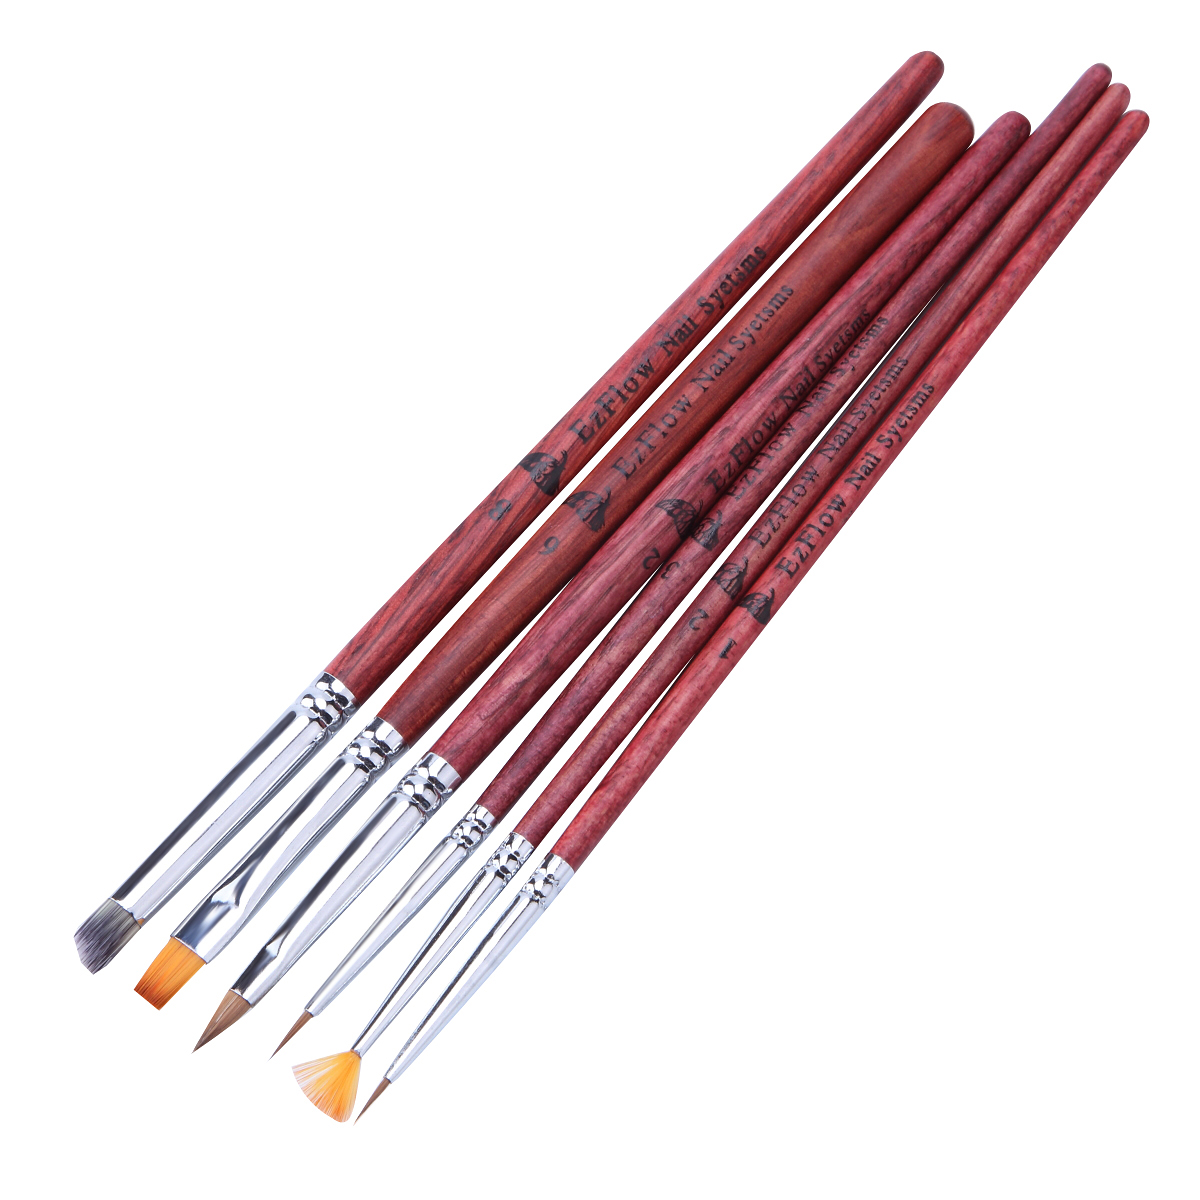 Aliexpress 1pcs Nail Art Brush Red Wood Handle Diy Uv Gel Polish Painting Drawing Pull Lines Grant Fan Shaped Pen Manicure Decoration From